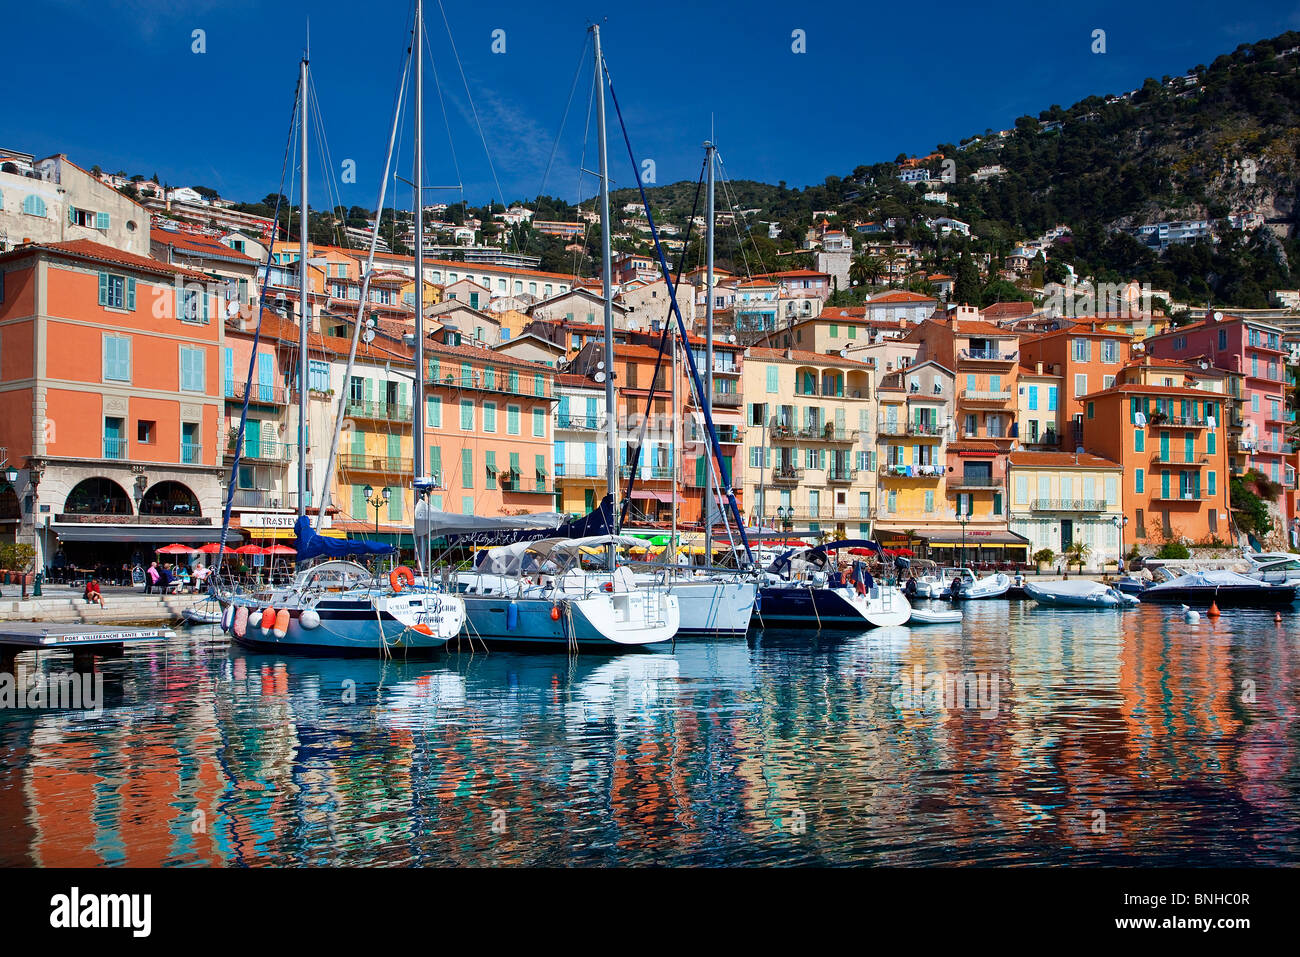 Europe, France, Alpes-Maritimes, Villefranche-sur-Mer Photo Stock